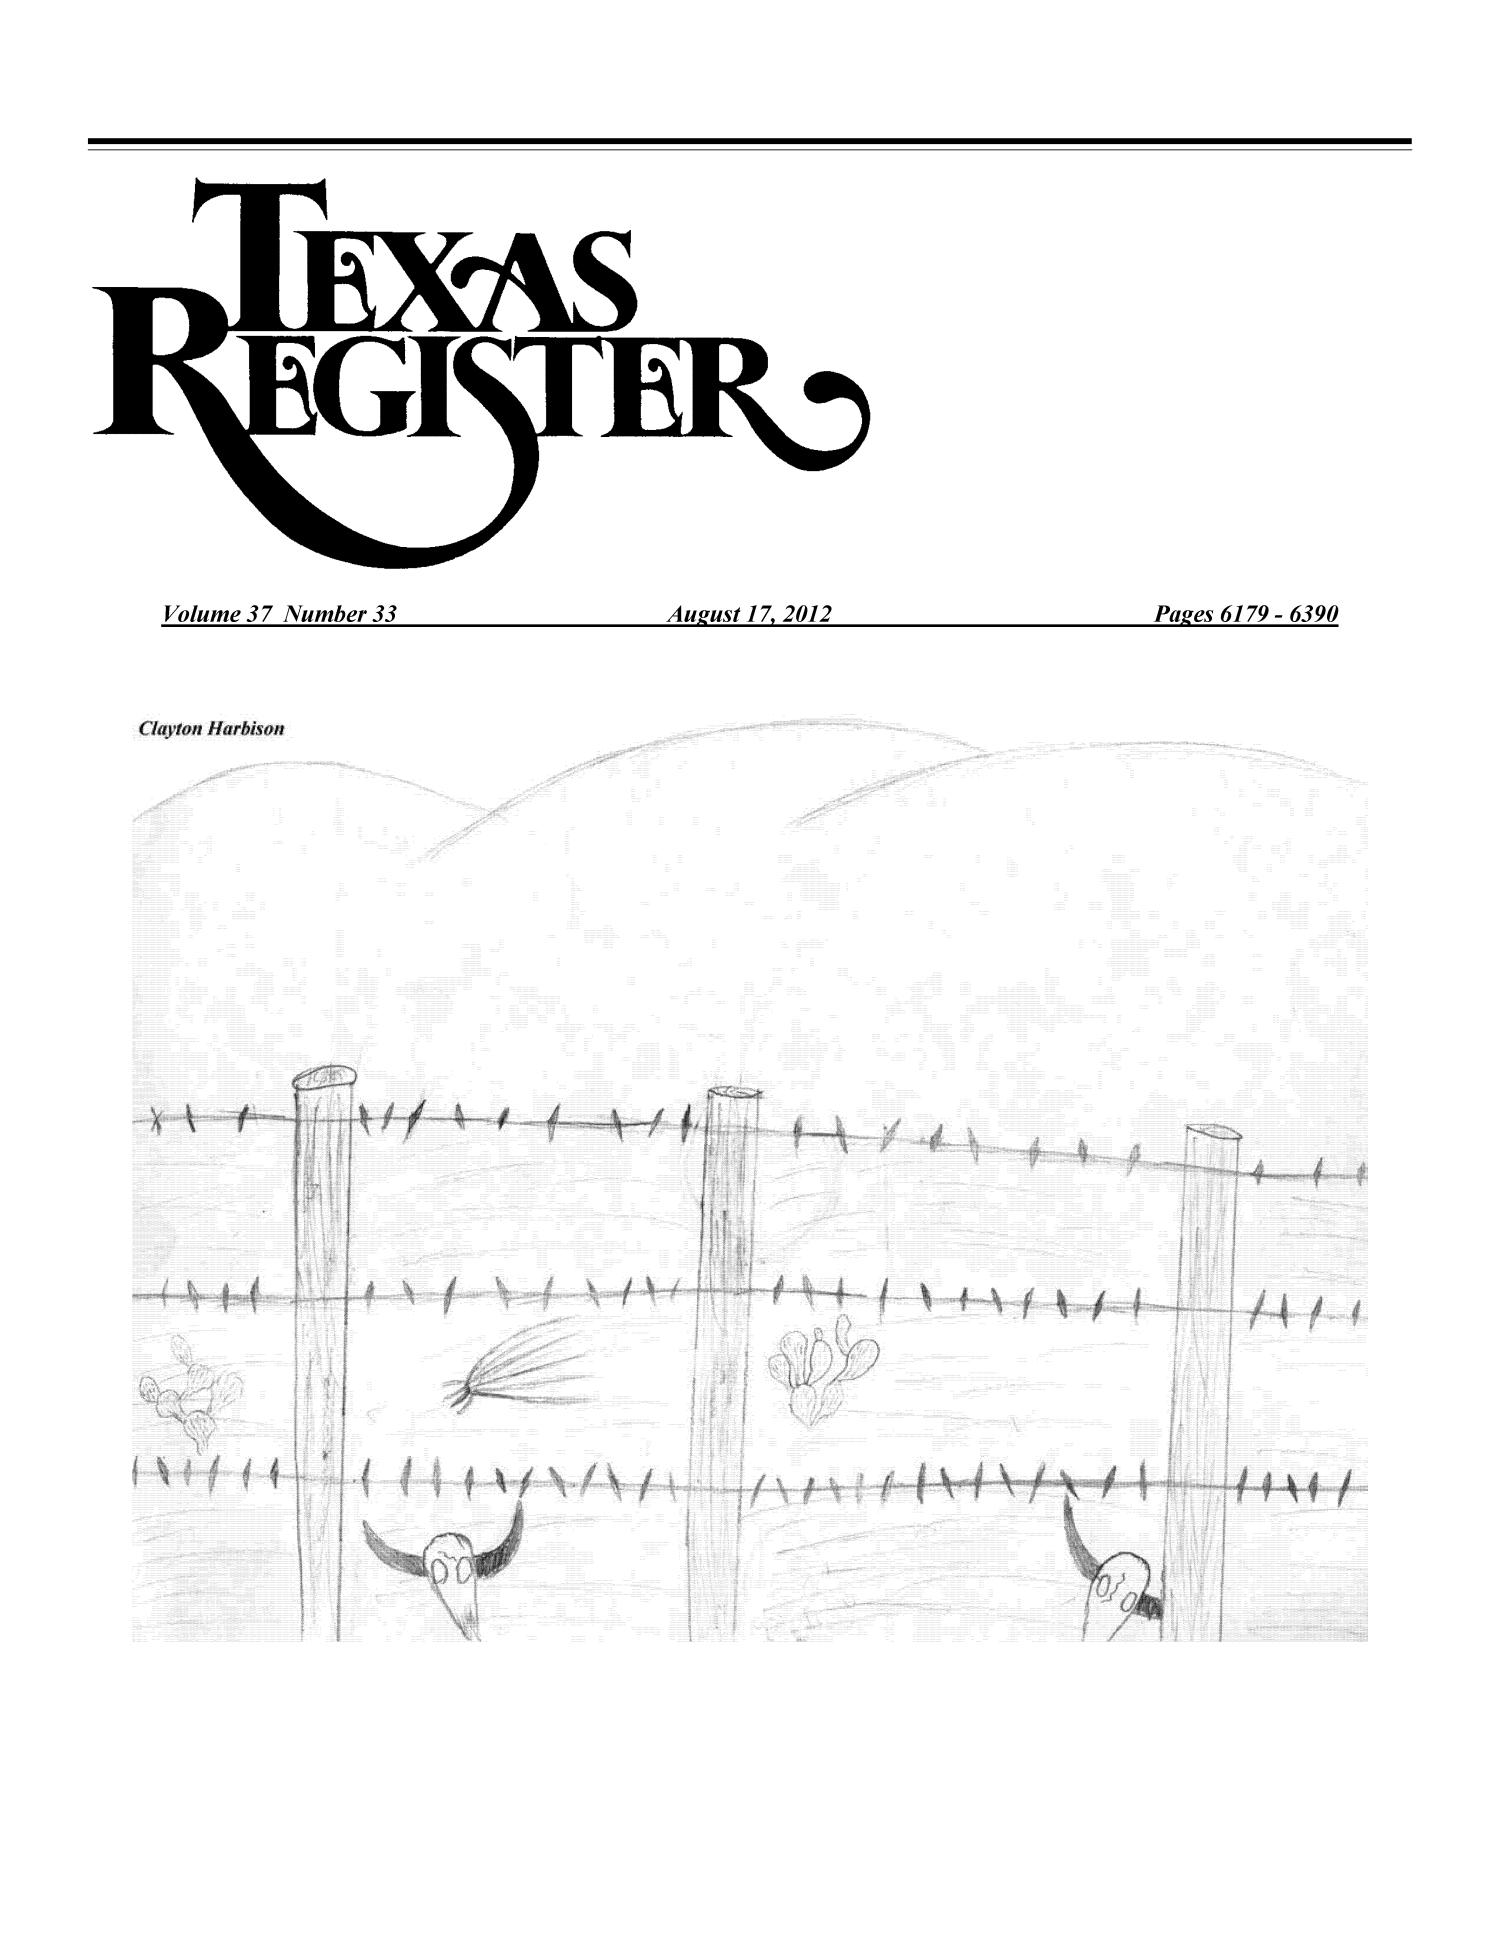 Texas Register, Volume 37, Number 33, Pages 6179-6390, August 17, 2012                                                                                                      Title Page